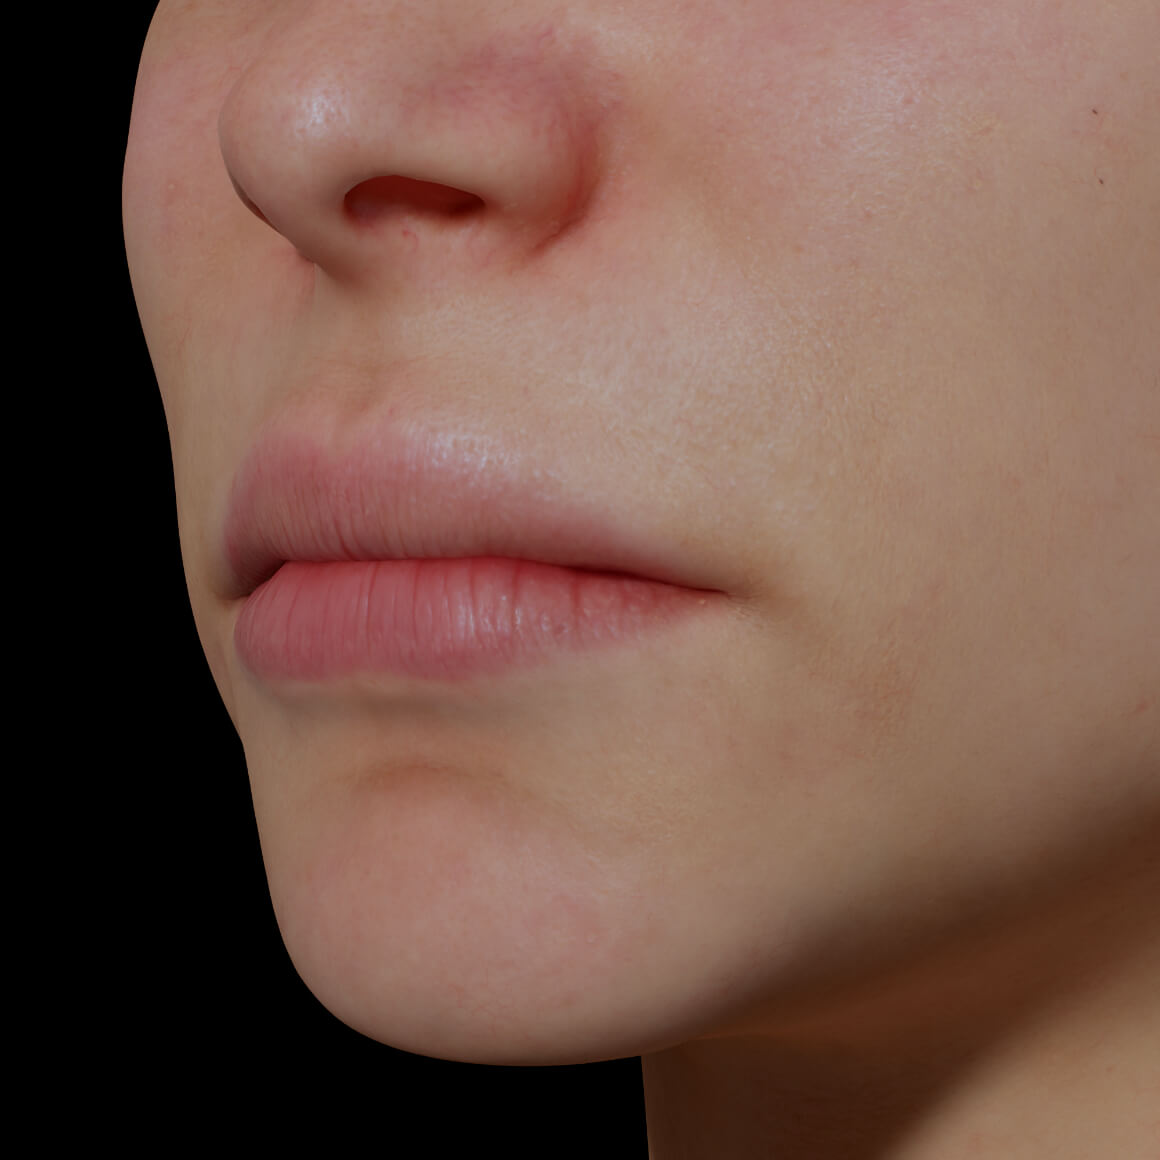 Female patient from Clinique Chloé at an angle after dermal filler injections to increase lip volume